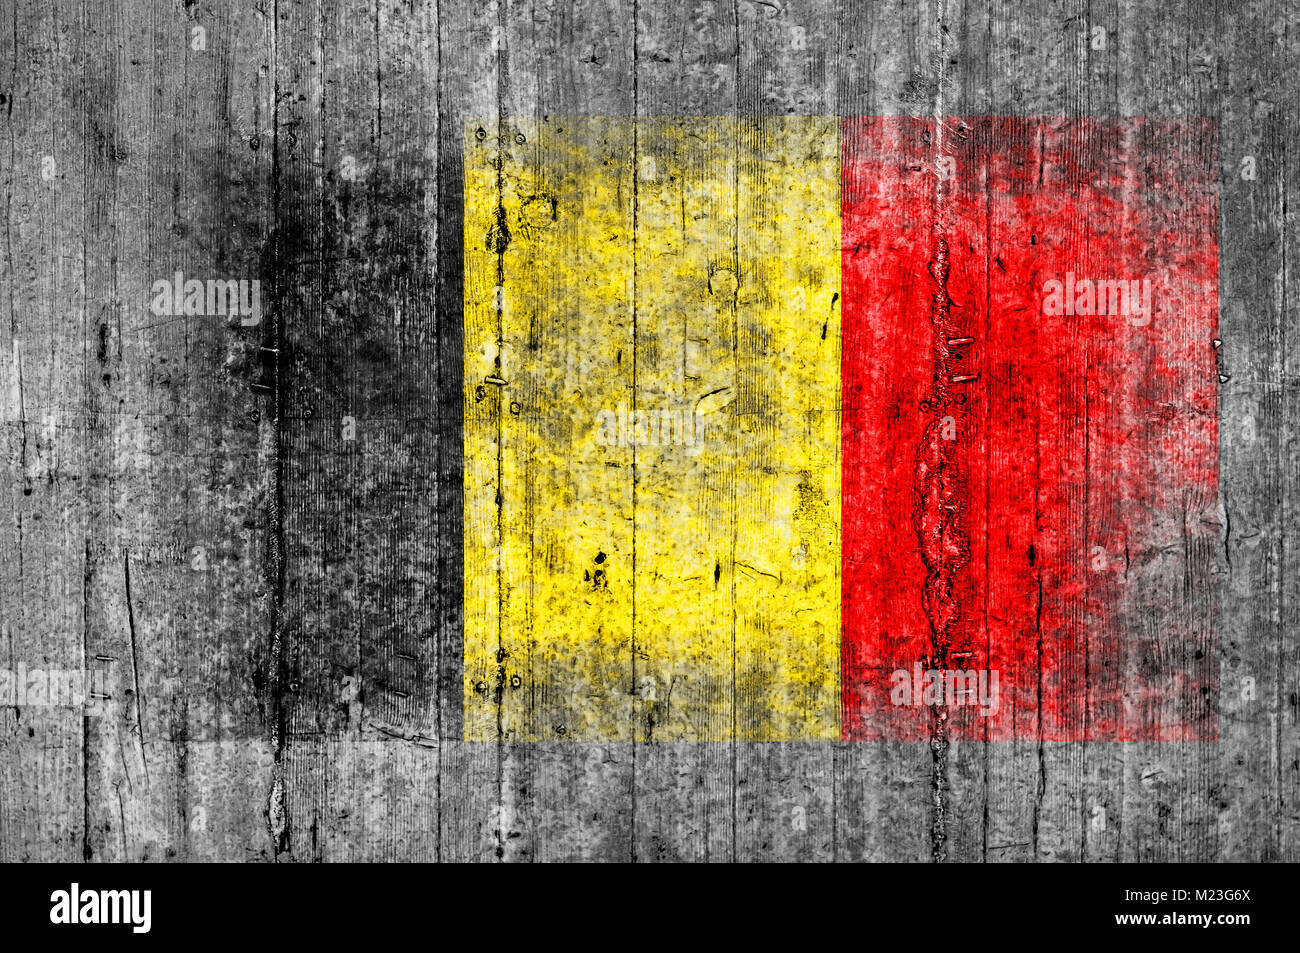 Belgium flag painted on background texture gray concrete - Stock Image